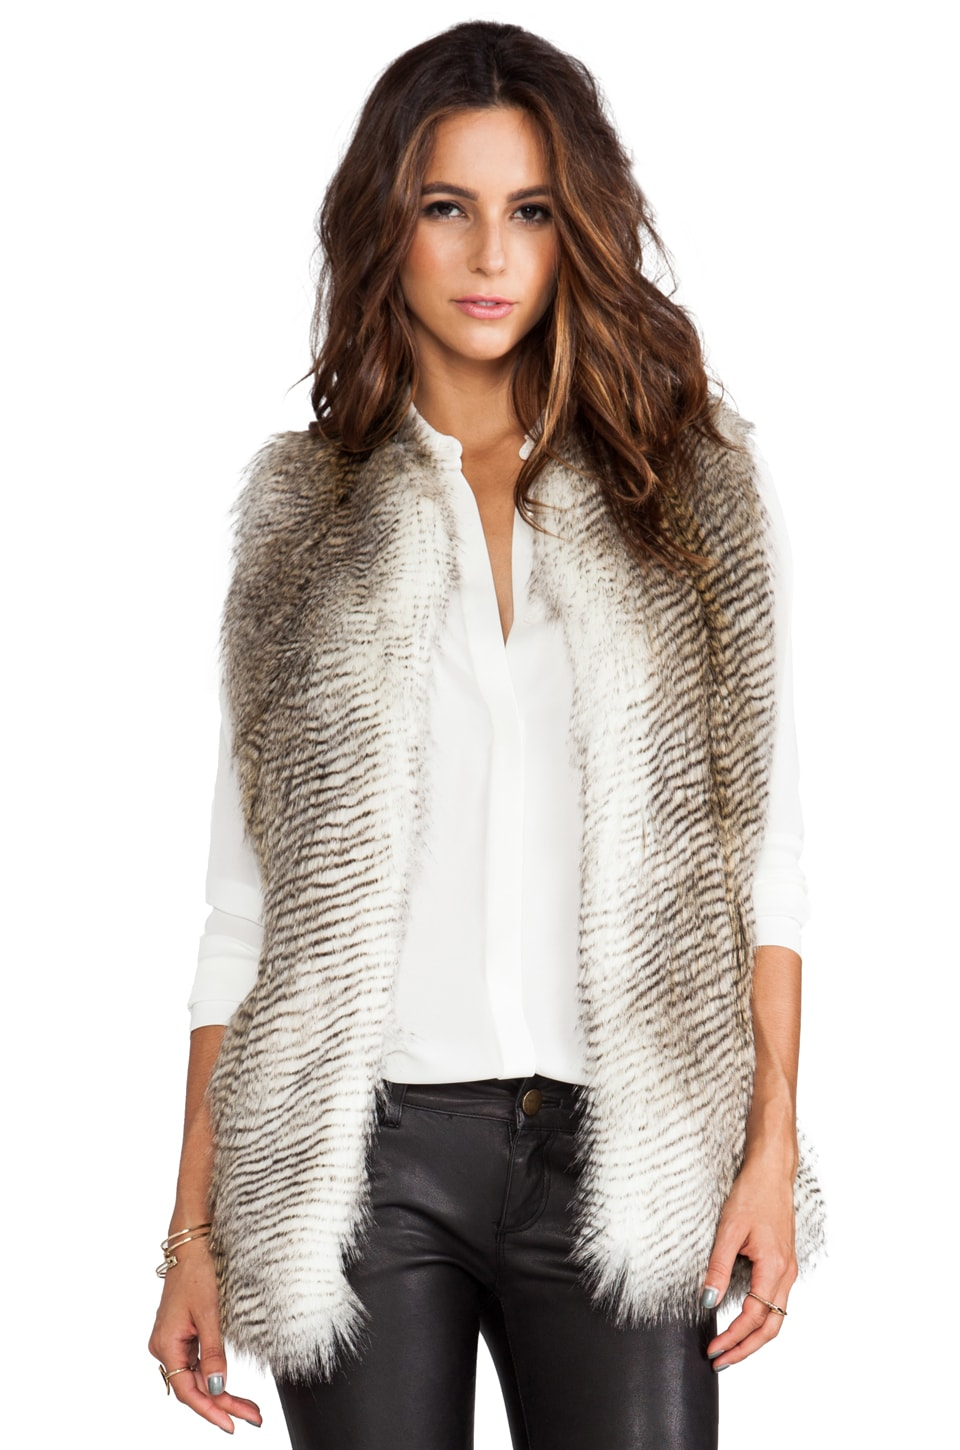 BSABLE Wendy Faux Fur Vest in Multi-Hawk